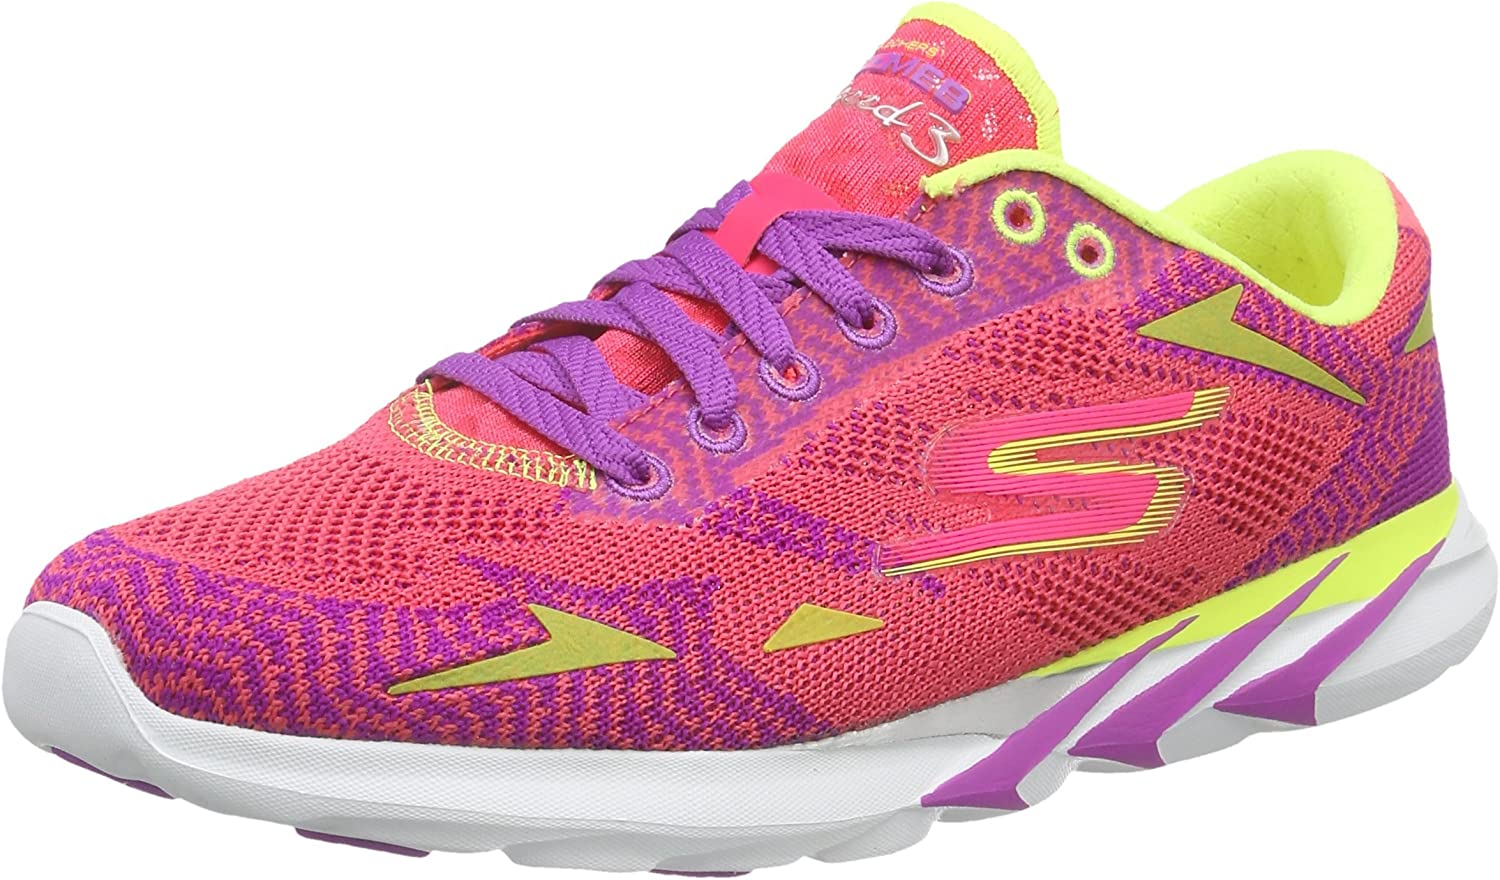 Skechers Go MEB Speed 3 2016